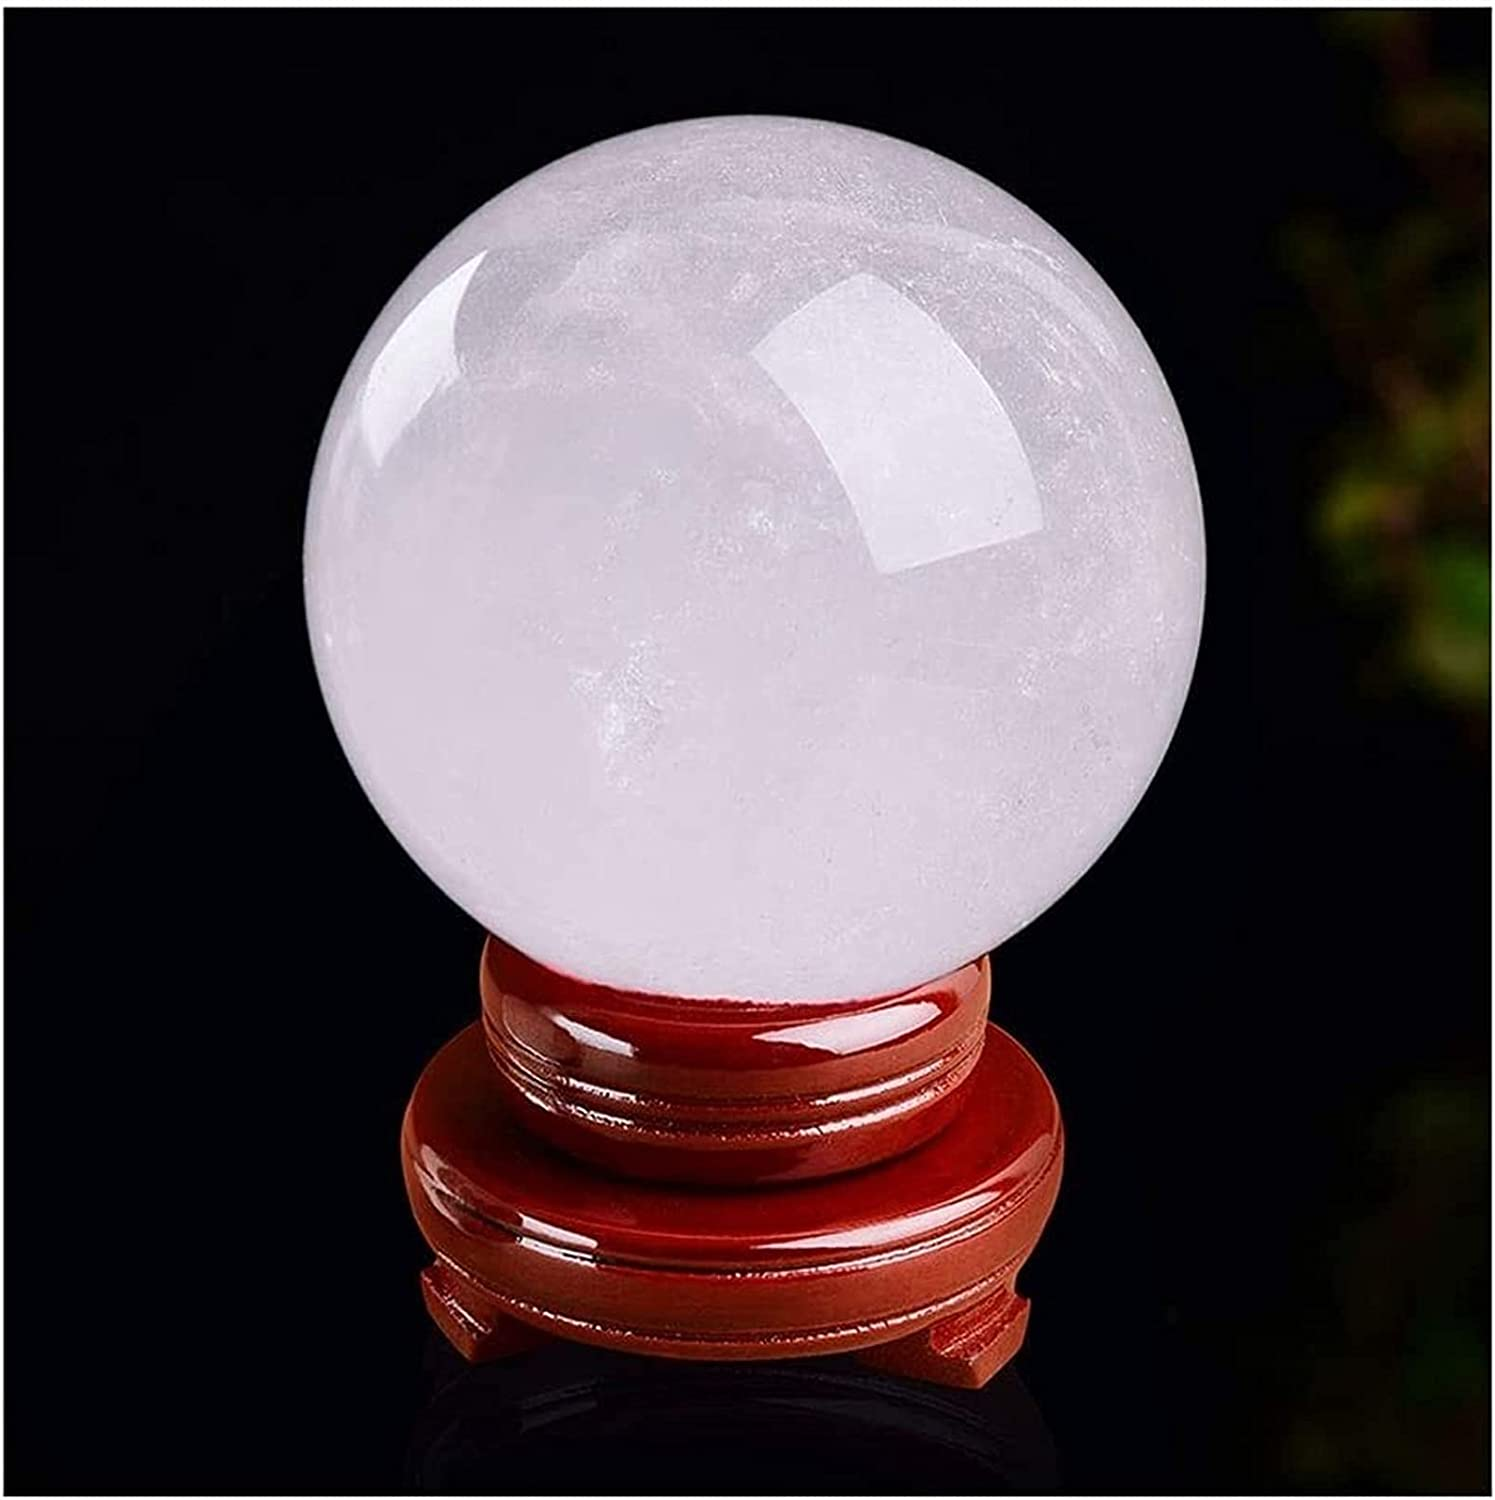 AnimeFiG Crystal Ball Glass Sphere New product type Max 42% OFF White Natural Milky C Cracked